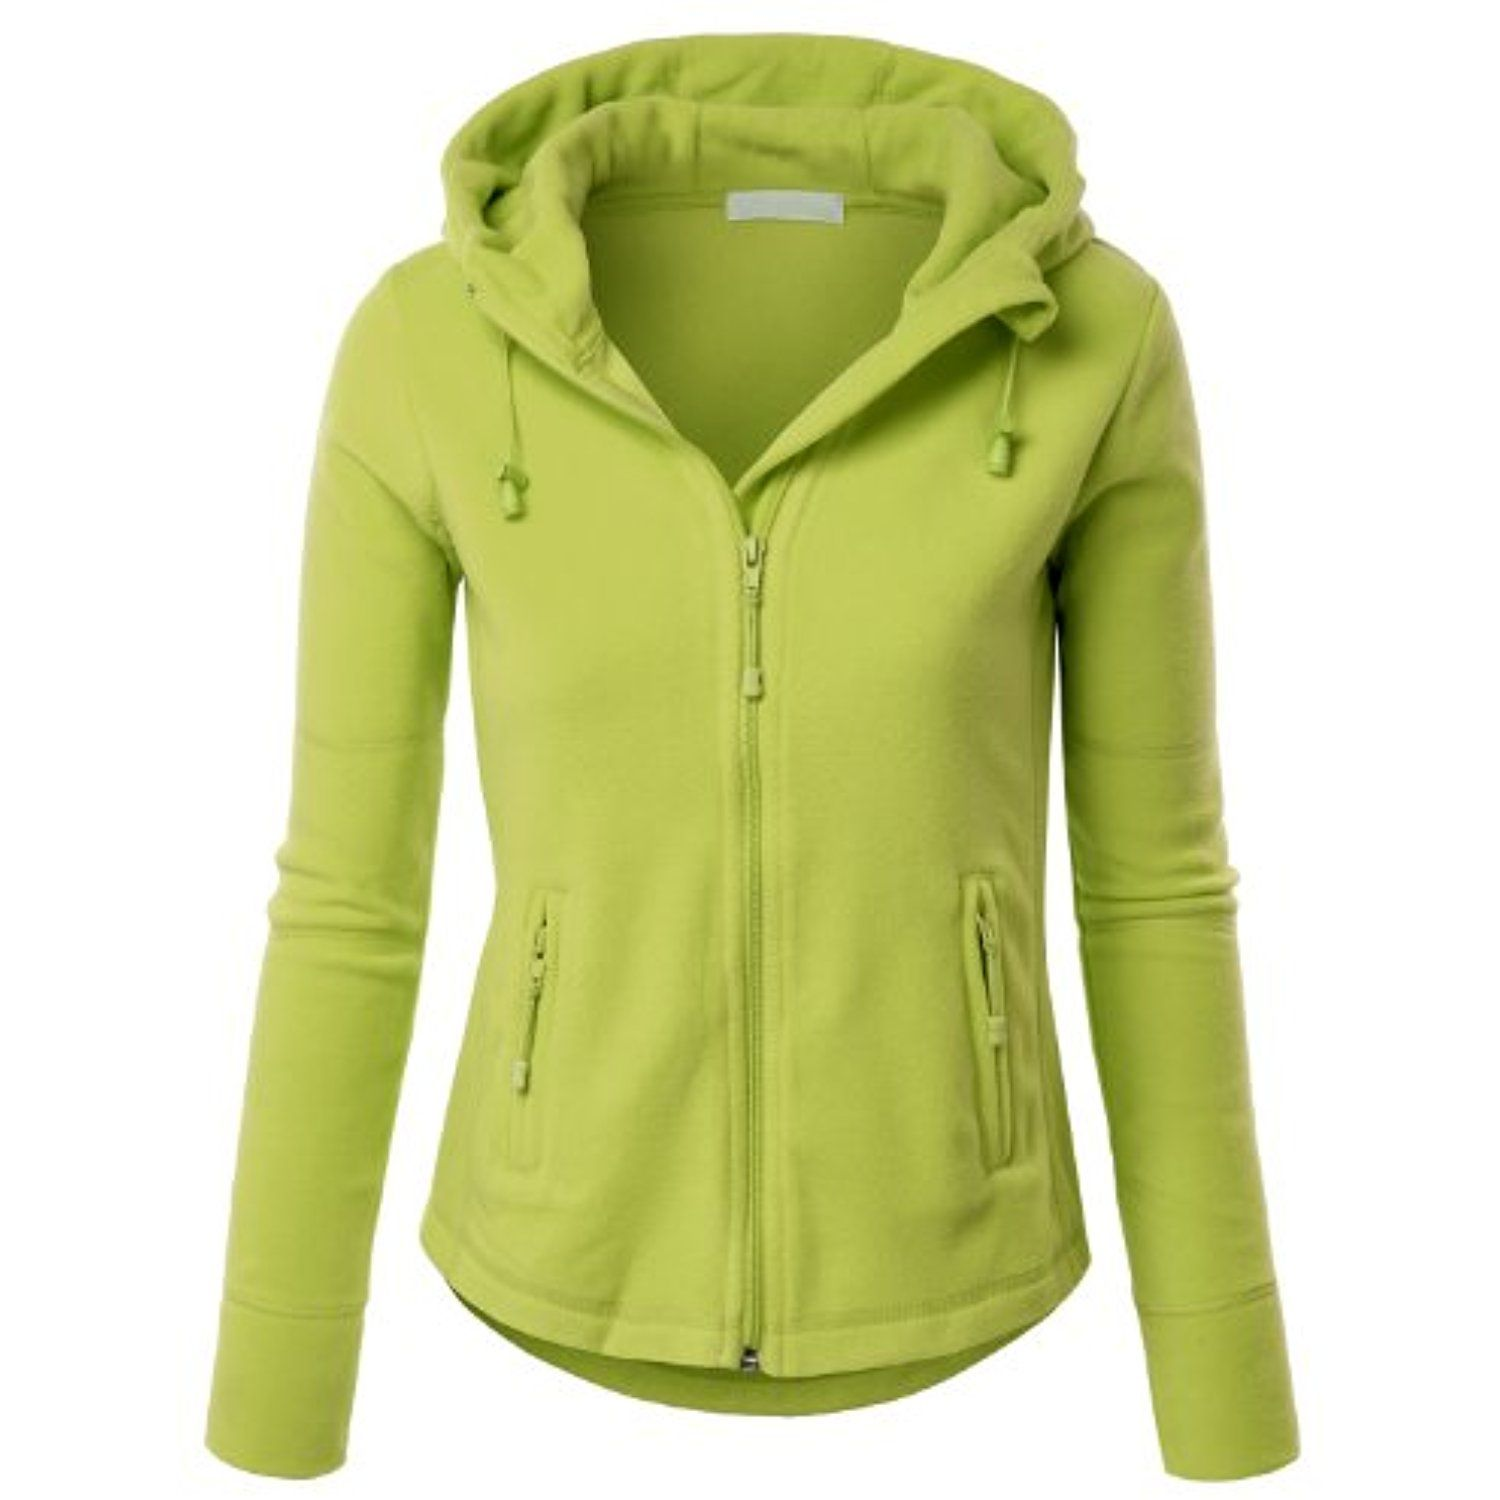 Womens active basic fitted zip up fleece hoodie jacket ueueue visit the